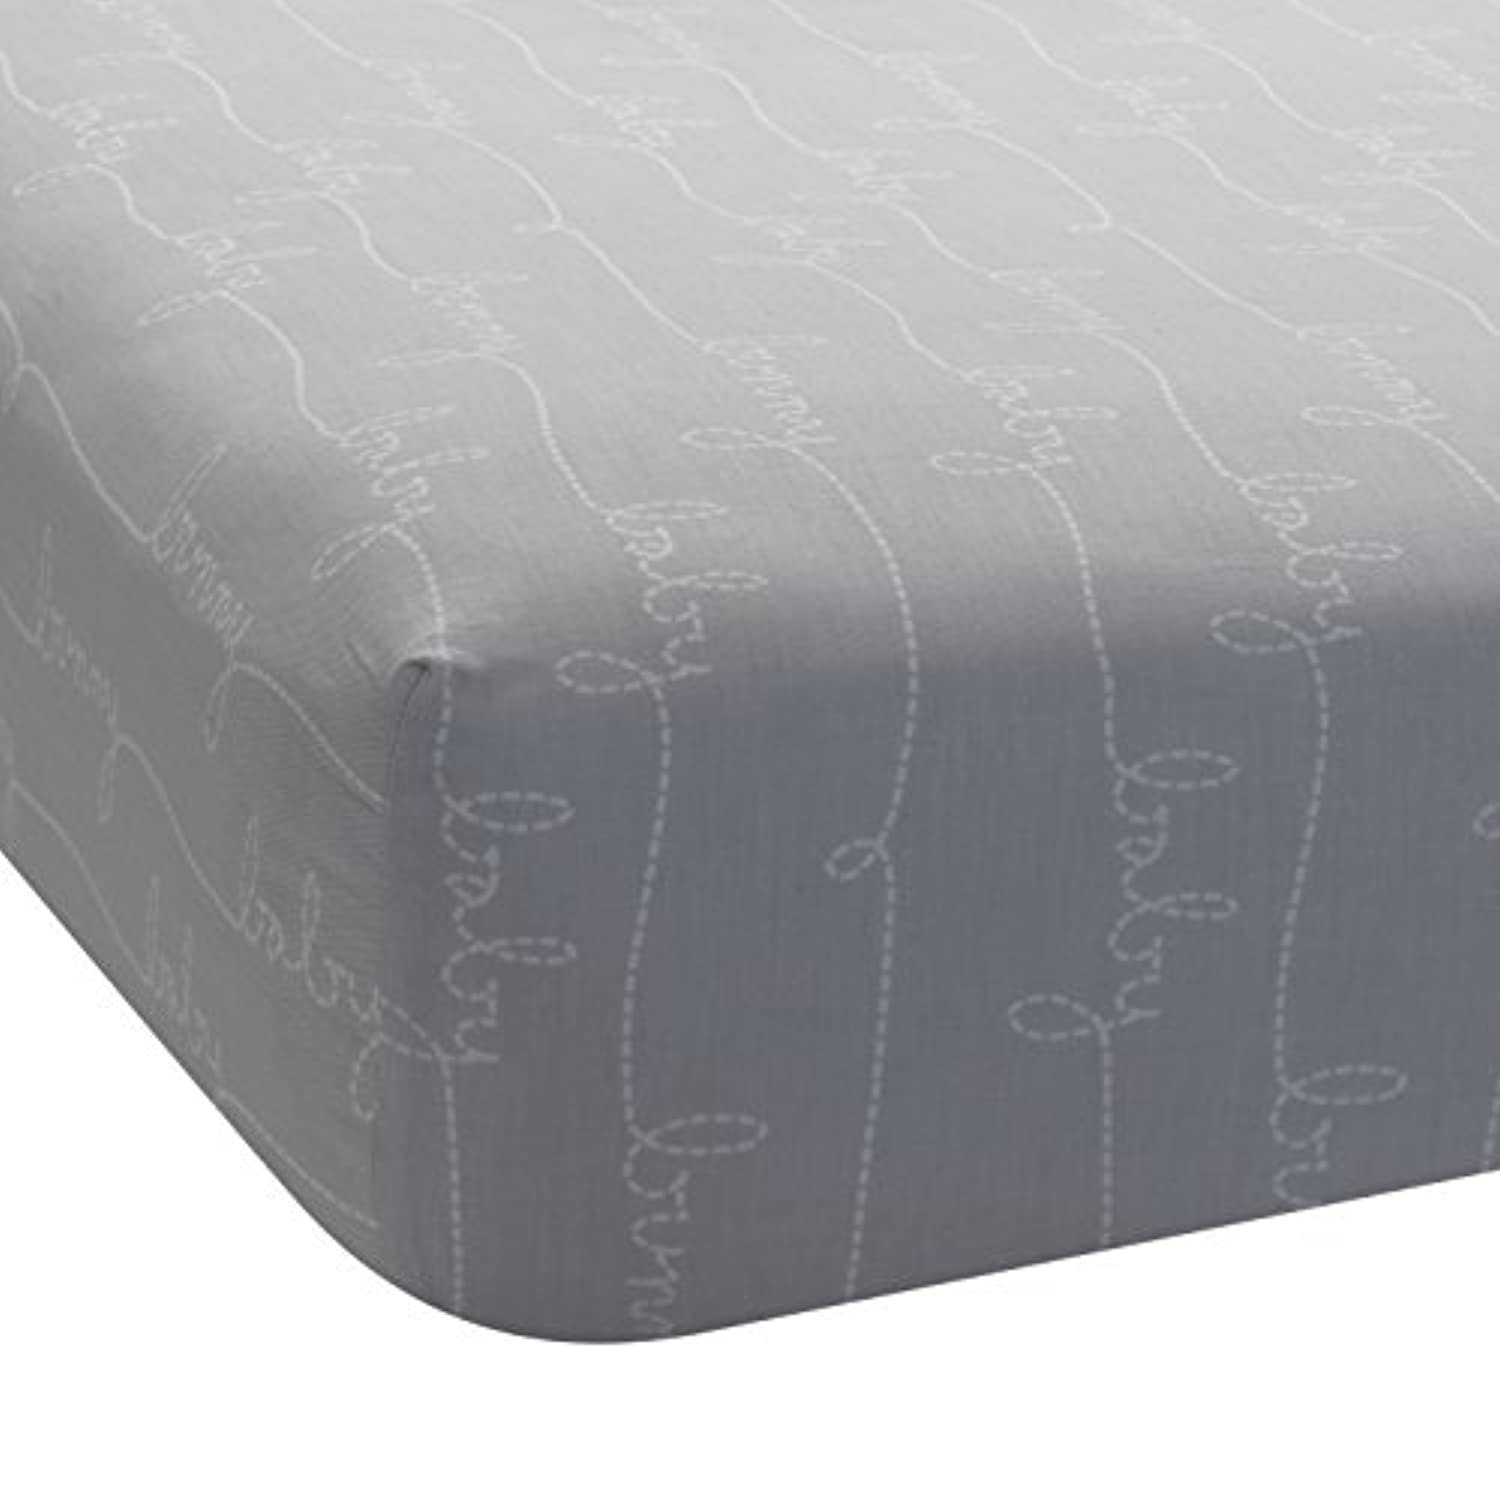 Lambs & Ivy Bunny Collection Fitted Sheet, Gray Script by Lambs & Ivy